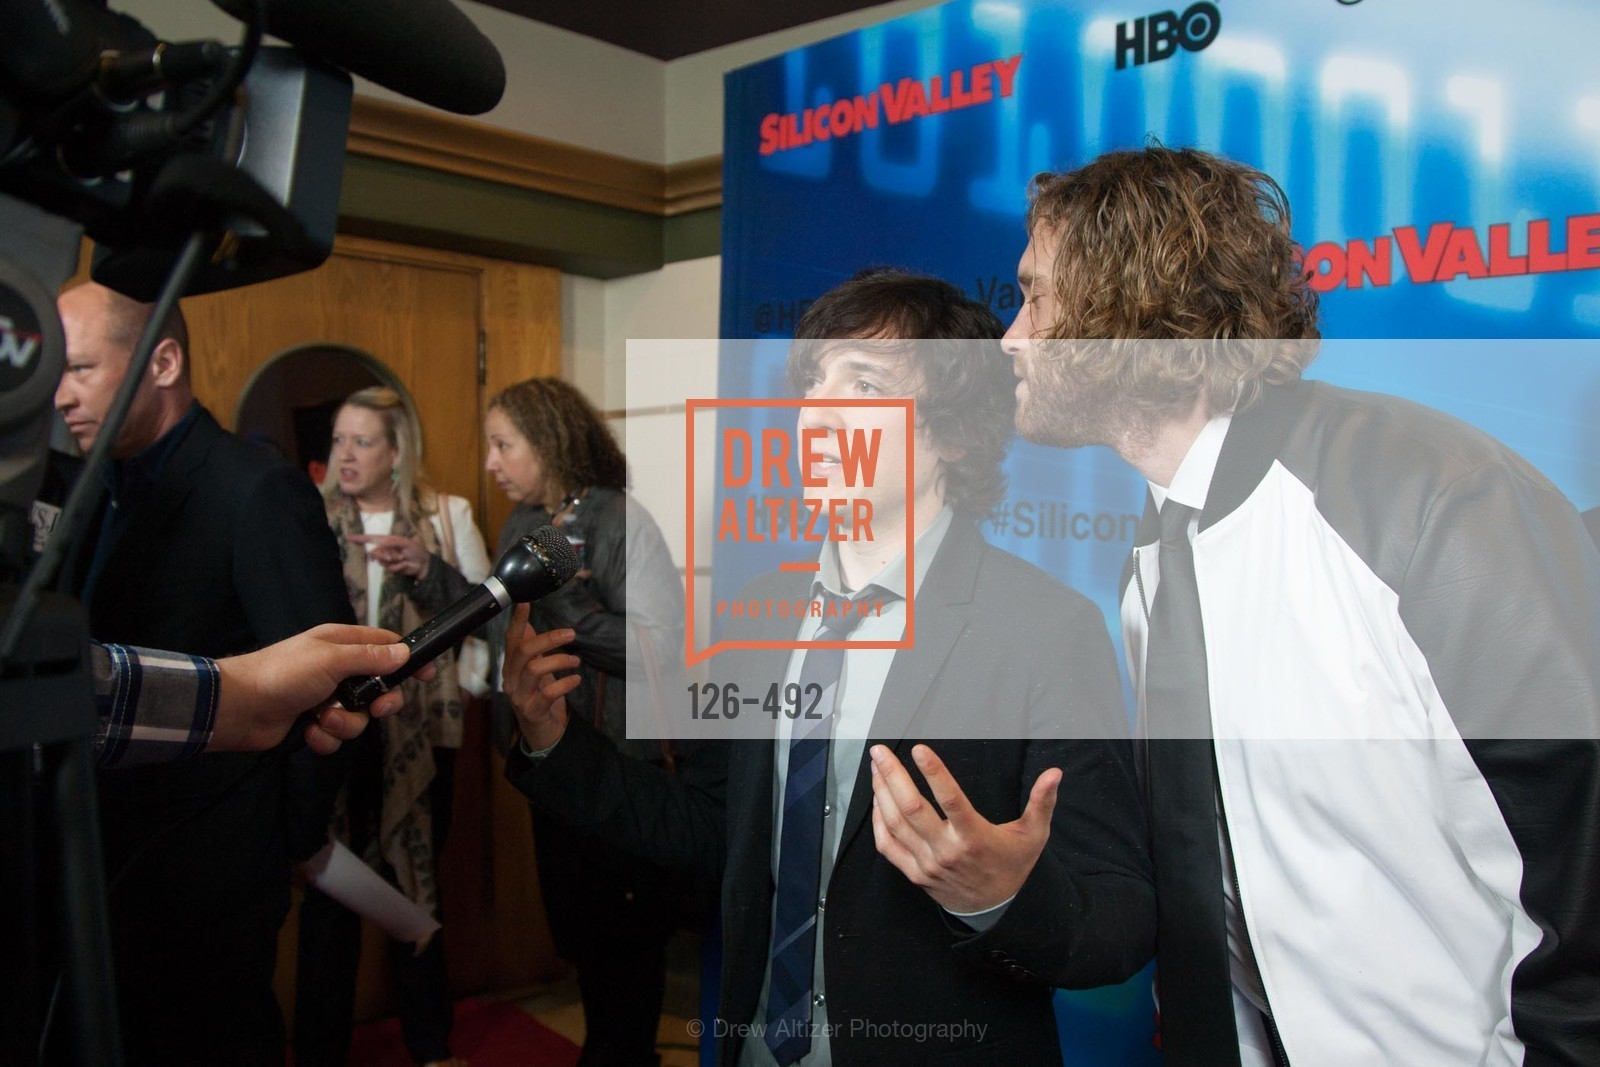 Josh Brener, TJ Miller, HBO Original Series 'Silicon Valley' Bay Area Premiere, US. US, April 2nd, 2014,Drew Altizer, Drew Altizer Photography, full-service agency, private events, San Francisco photographer, photographer california